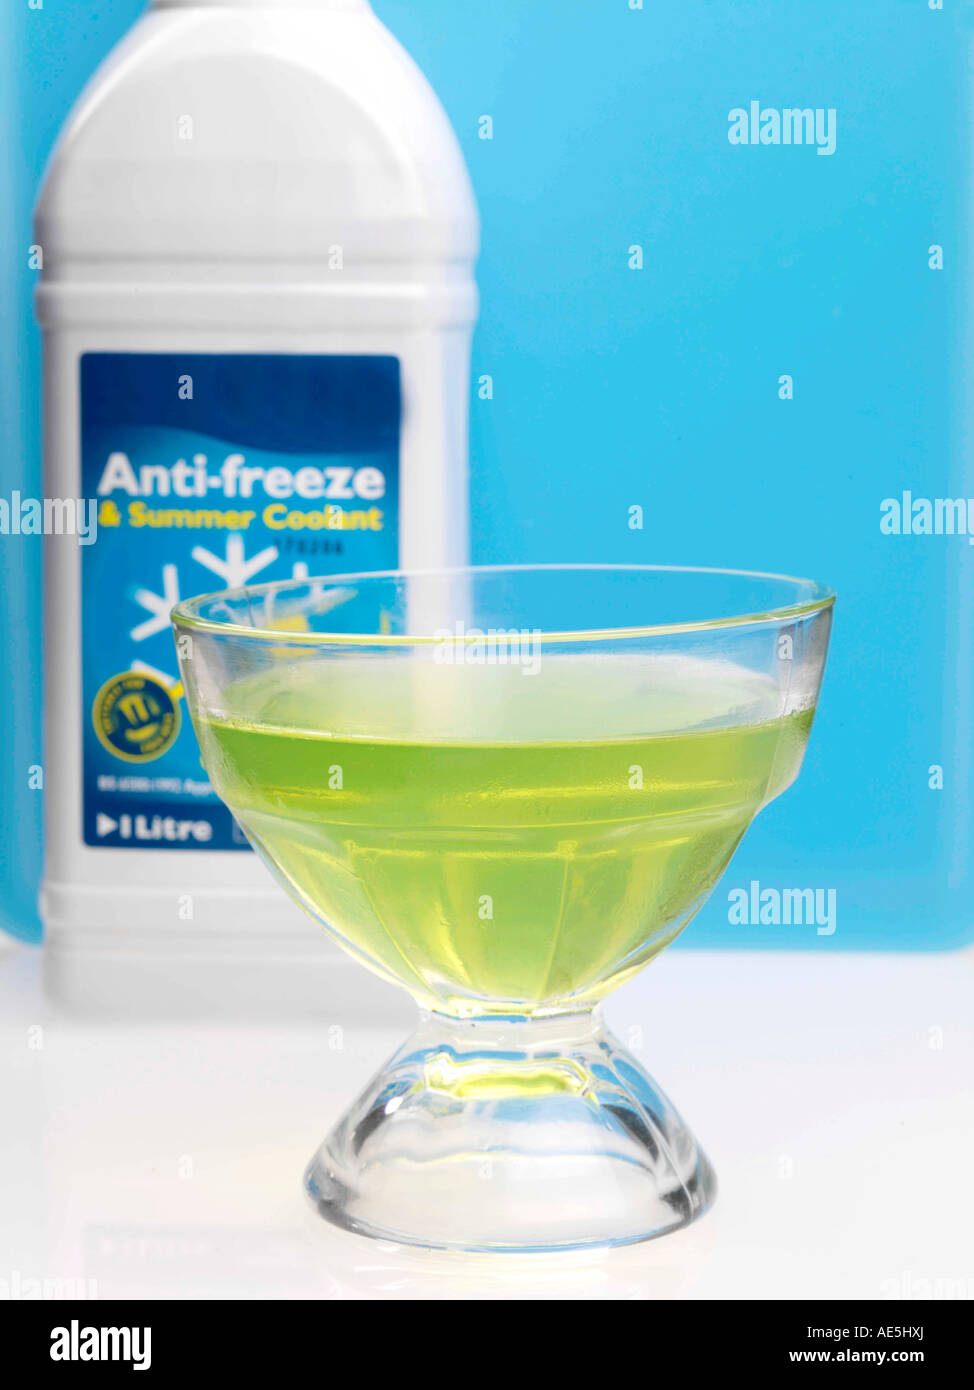 Anti Freeze Stock Photos Images Alamy Frozen Engine Coolant Lime Jelly With Image